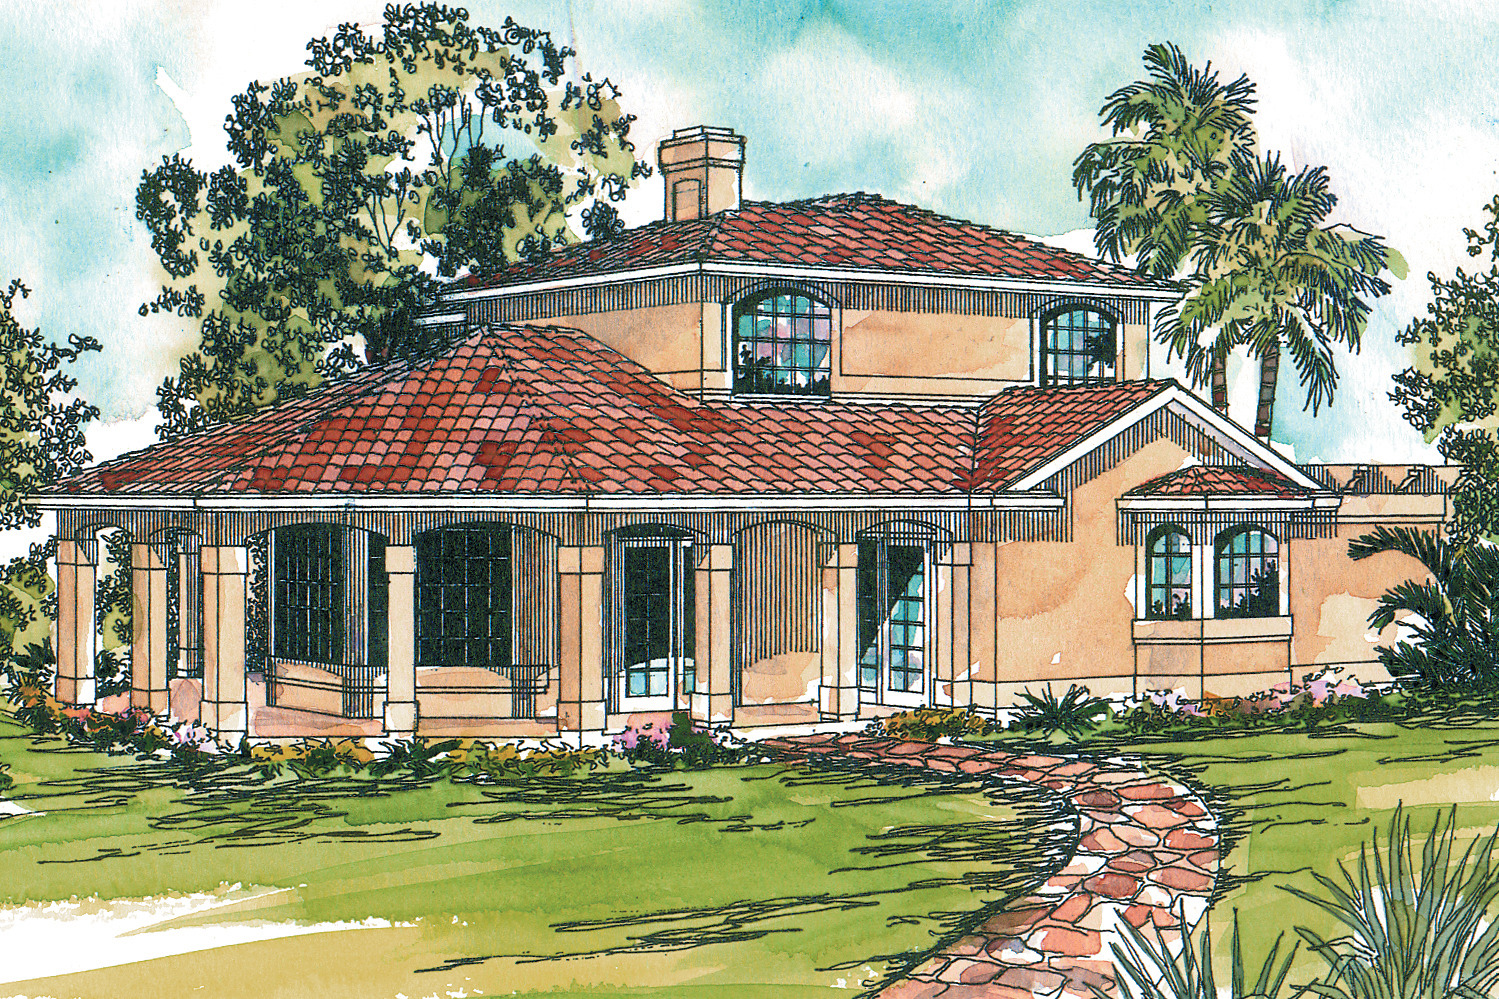 Courtyard Plans Mediterranean House Plans Lauderdale 11 037 Associated